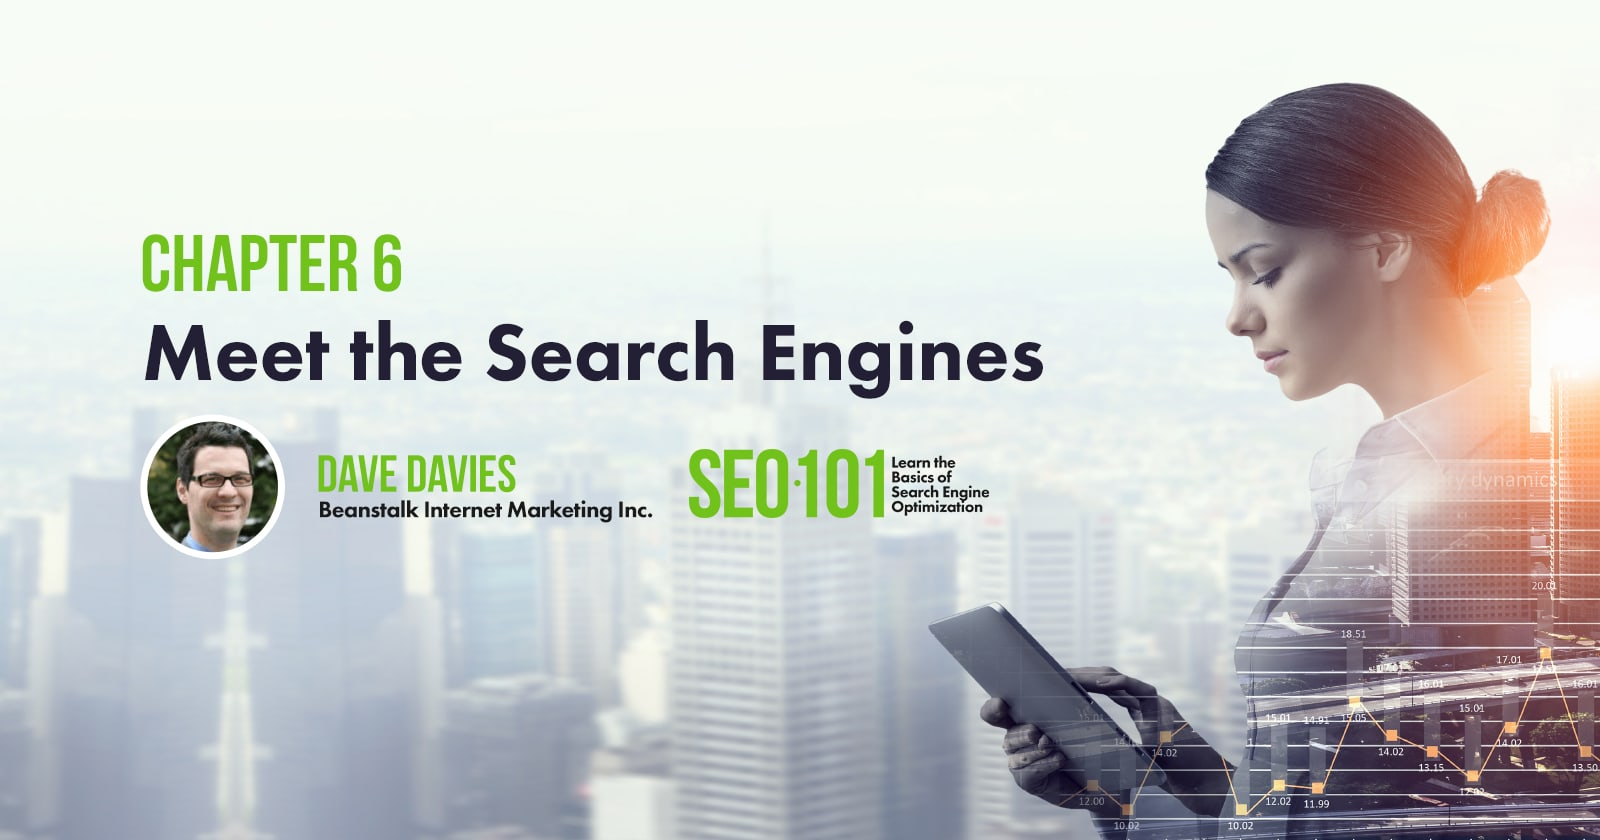 Meet the Search Engines